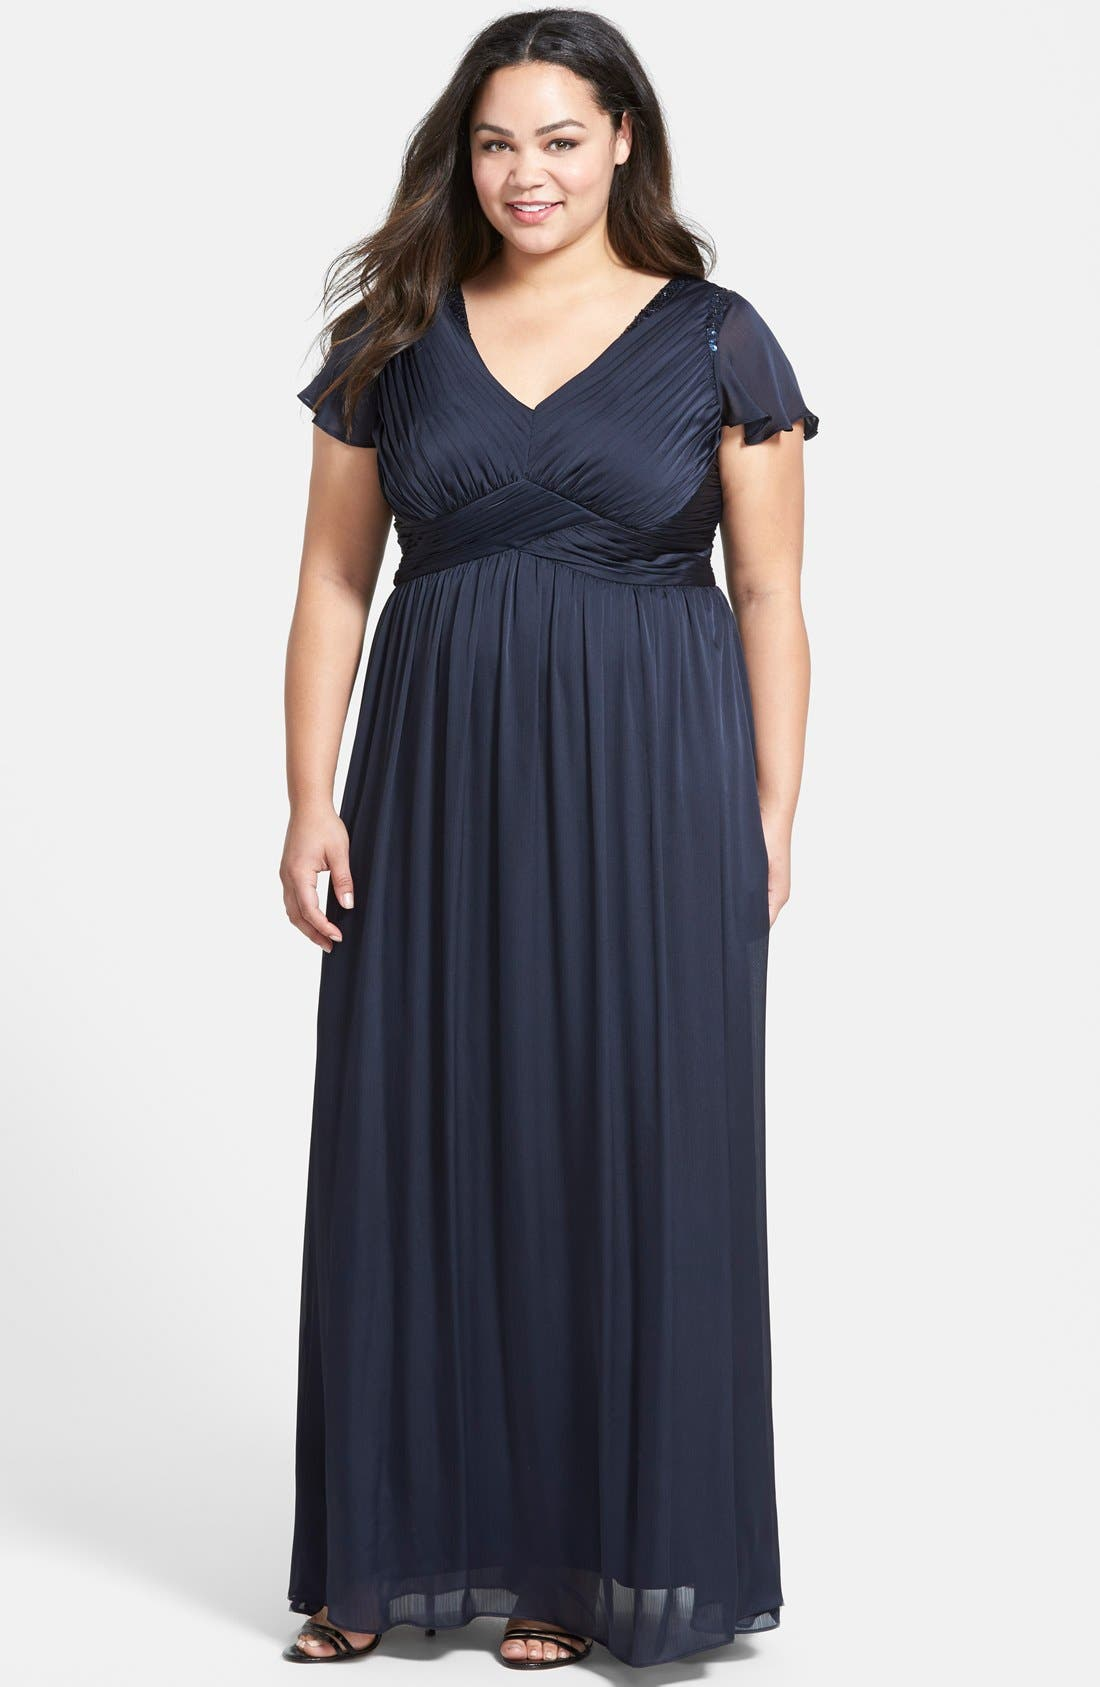 ADRIANNA PAPELL, Beaded Shoulder Pleat Chiffon Gown, Main thumbnail 1, color, 411